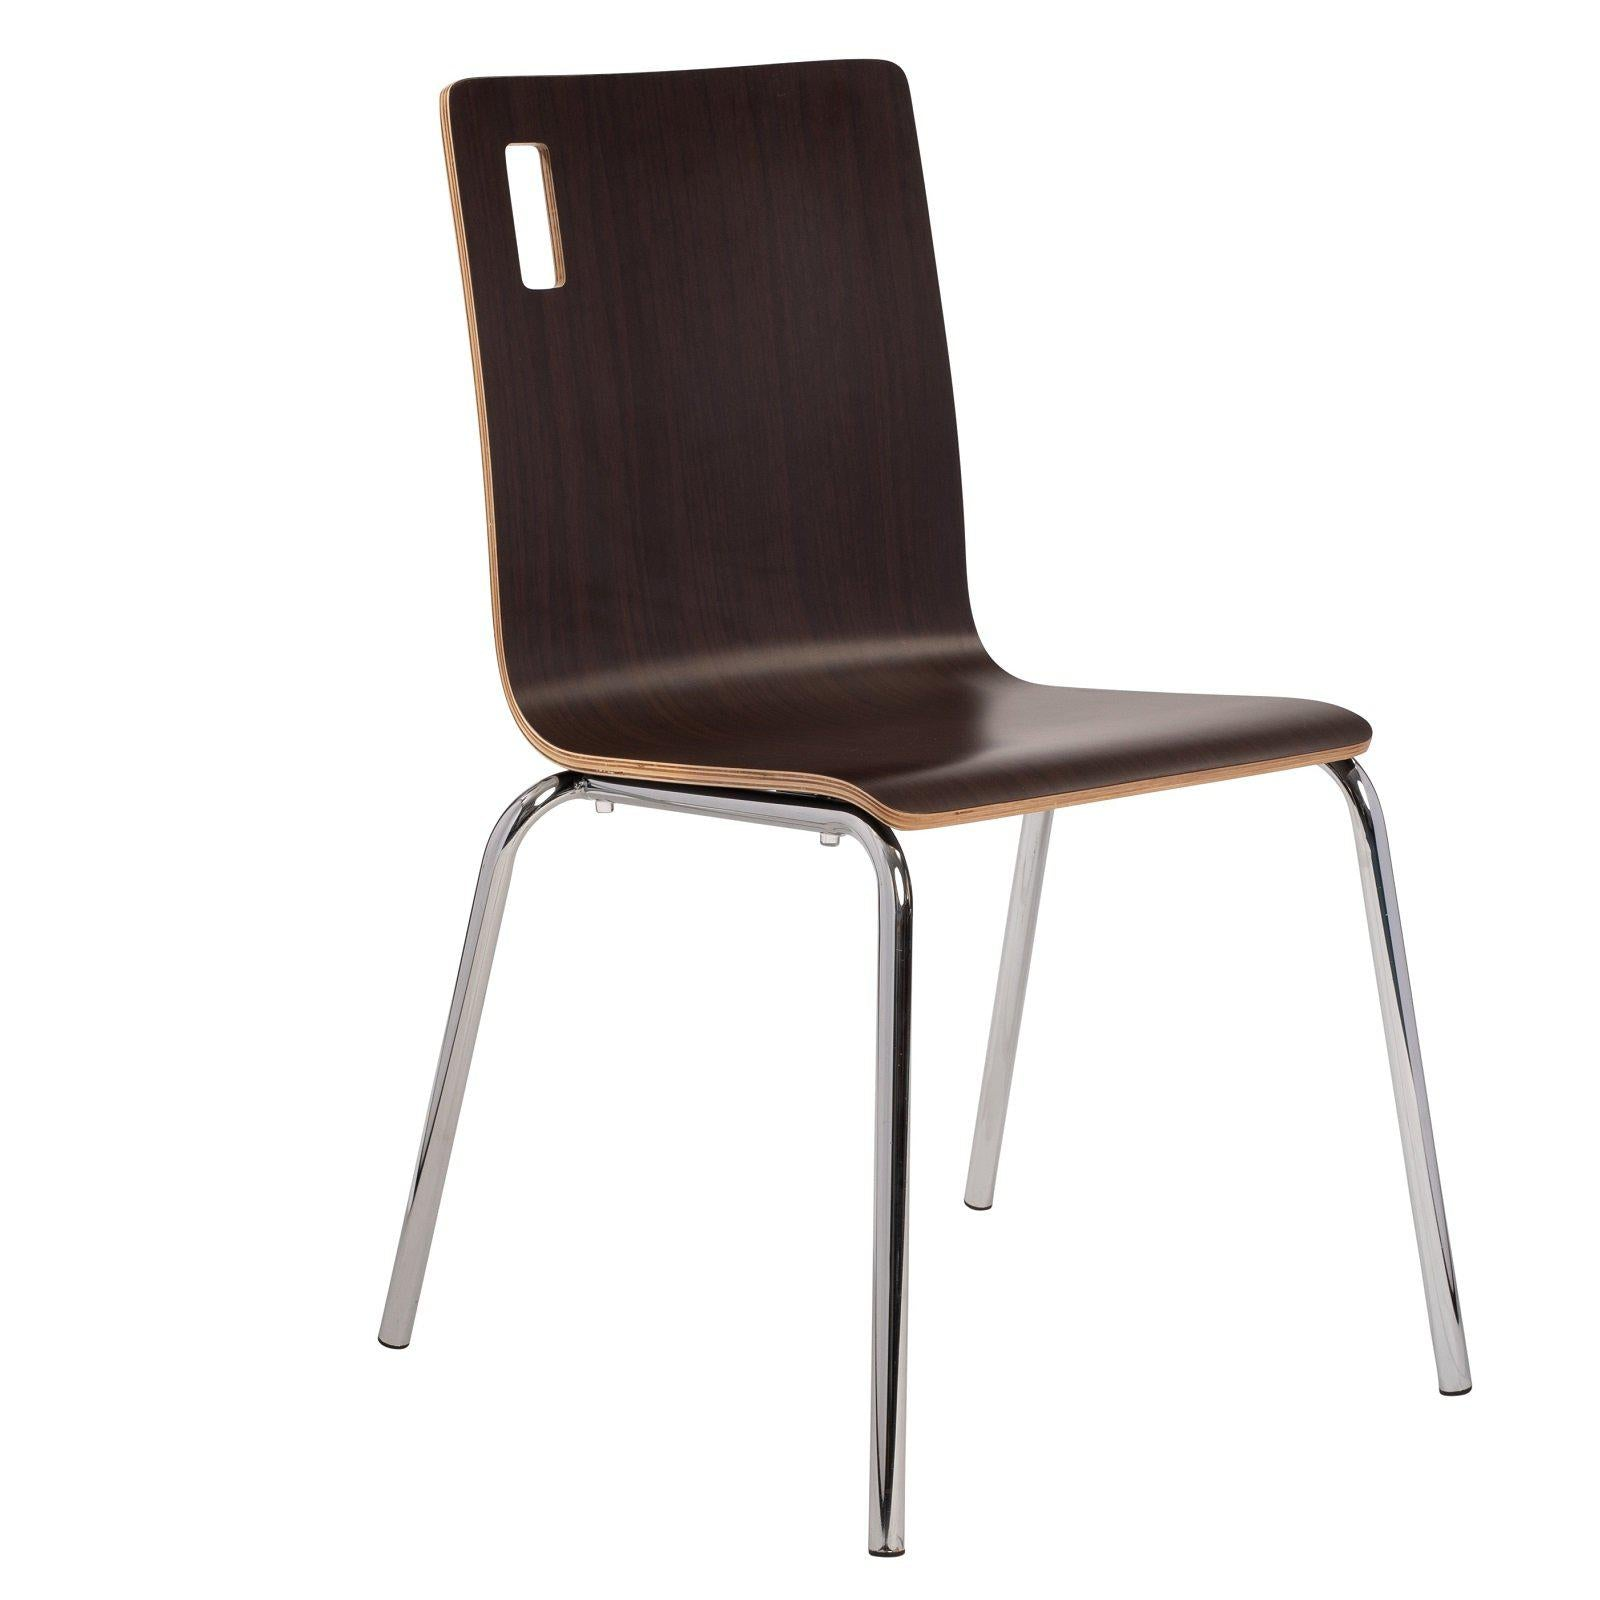 Bushwick Café Chair, Espresso Finish